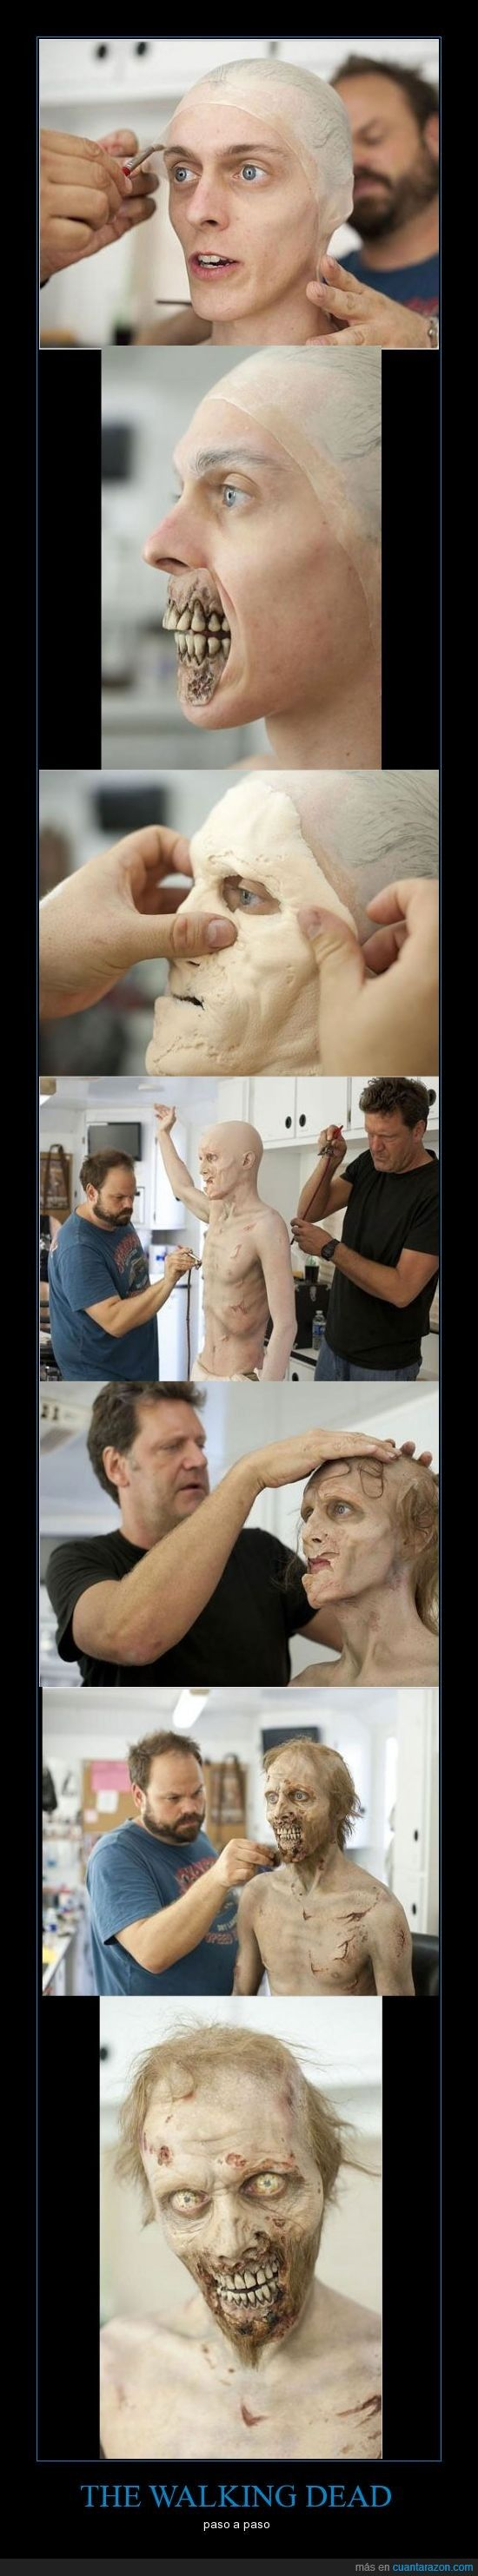 THE WALKING DEAD Behind the scenes look at the transformation from Human to Walker.